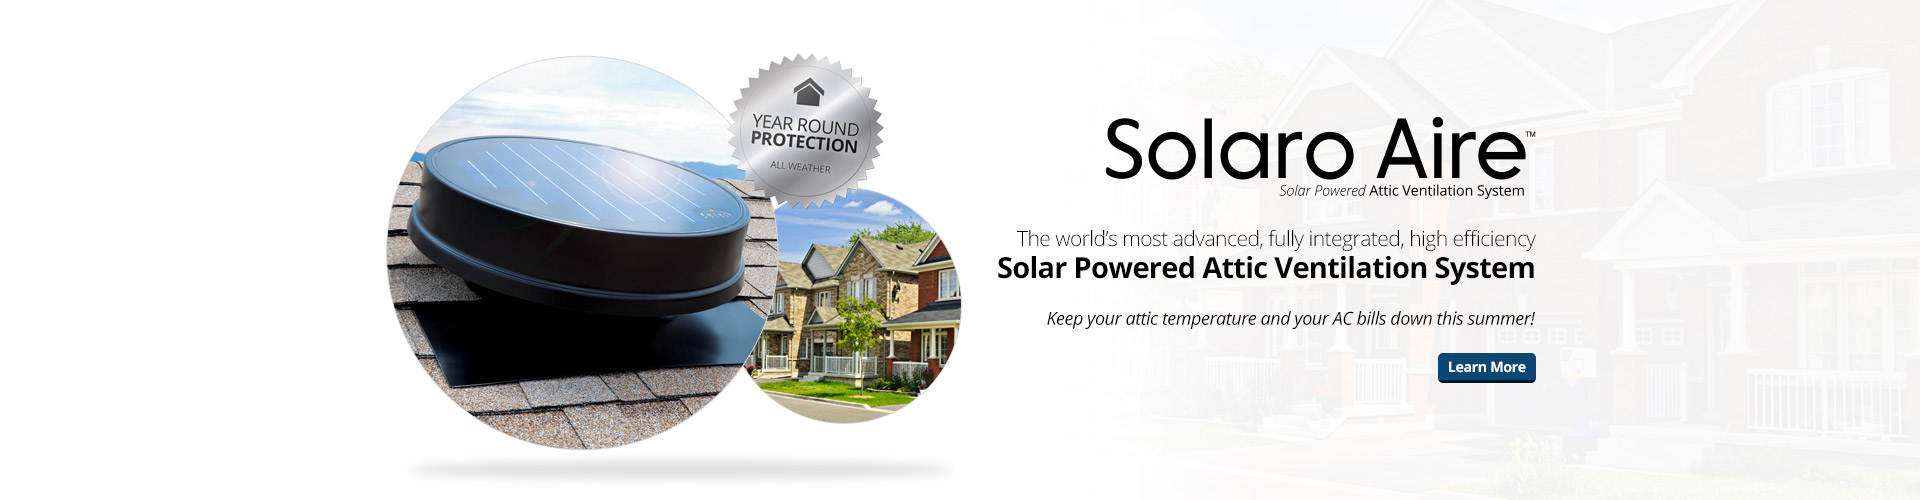 Solaro-Energy-Solaro-Aire-Attic-Fan-Home